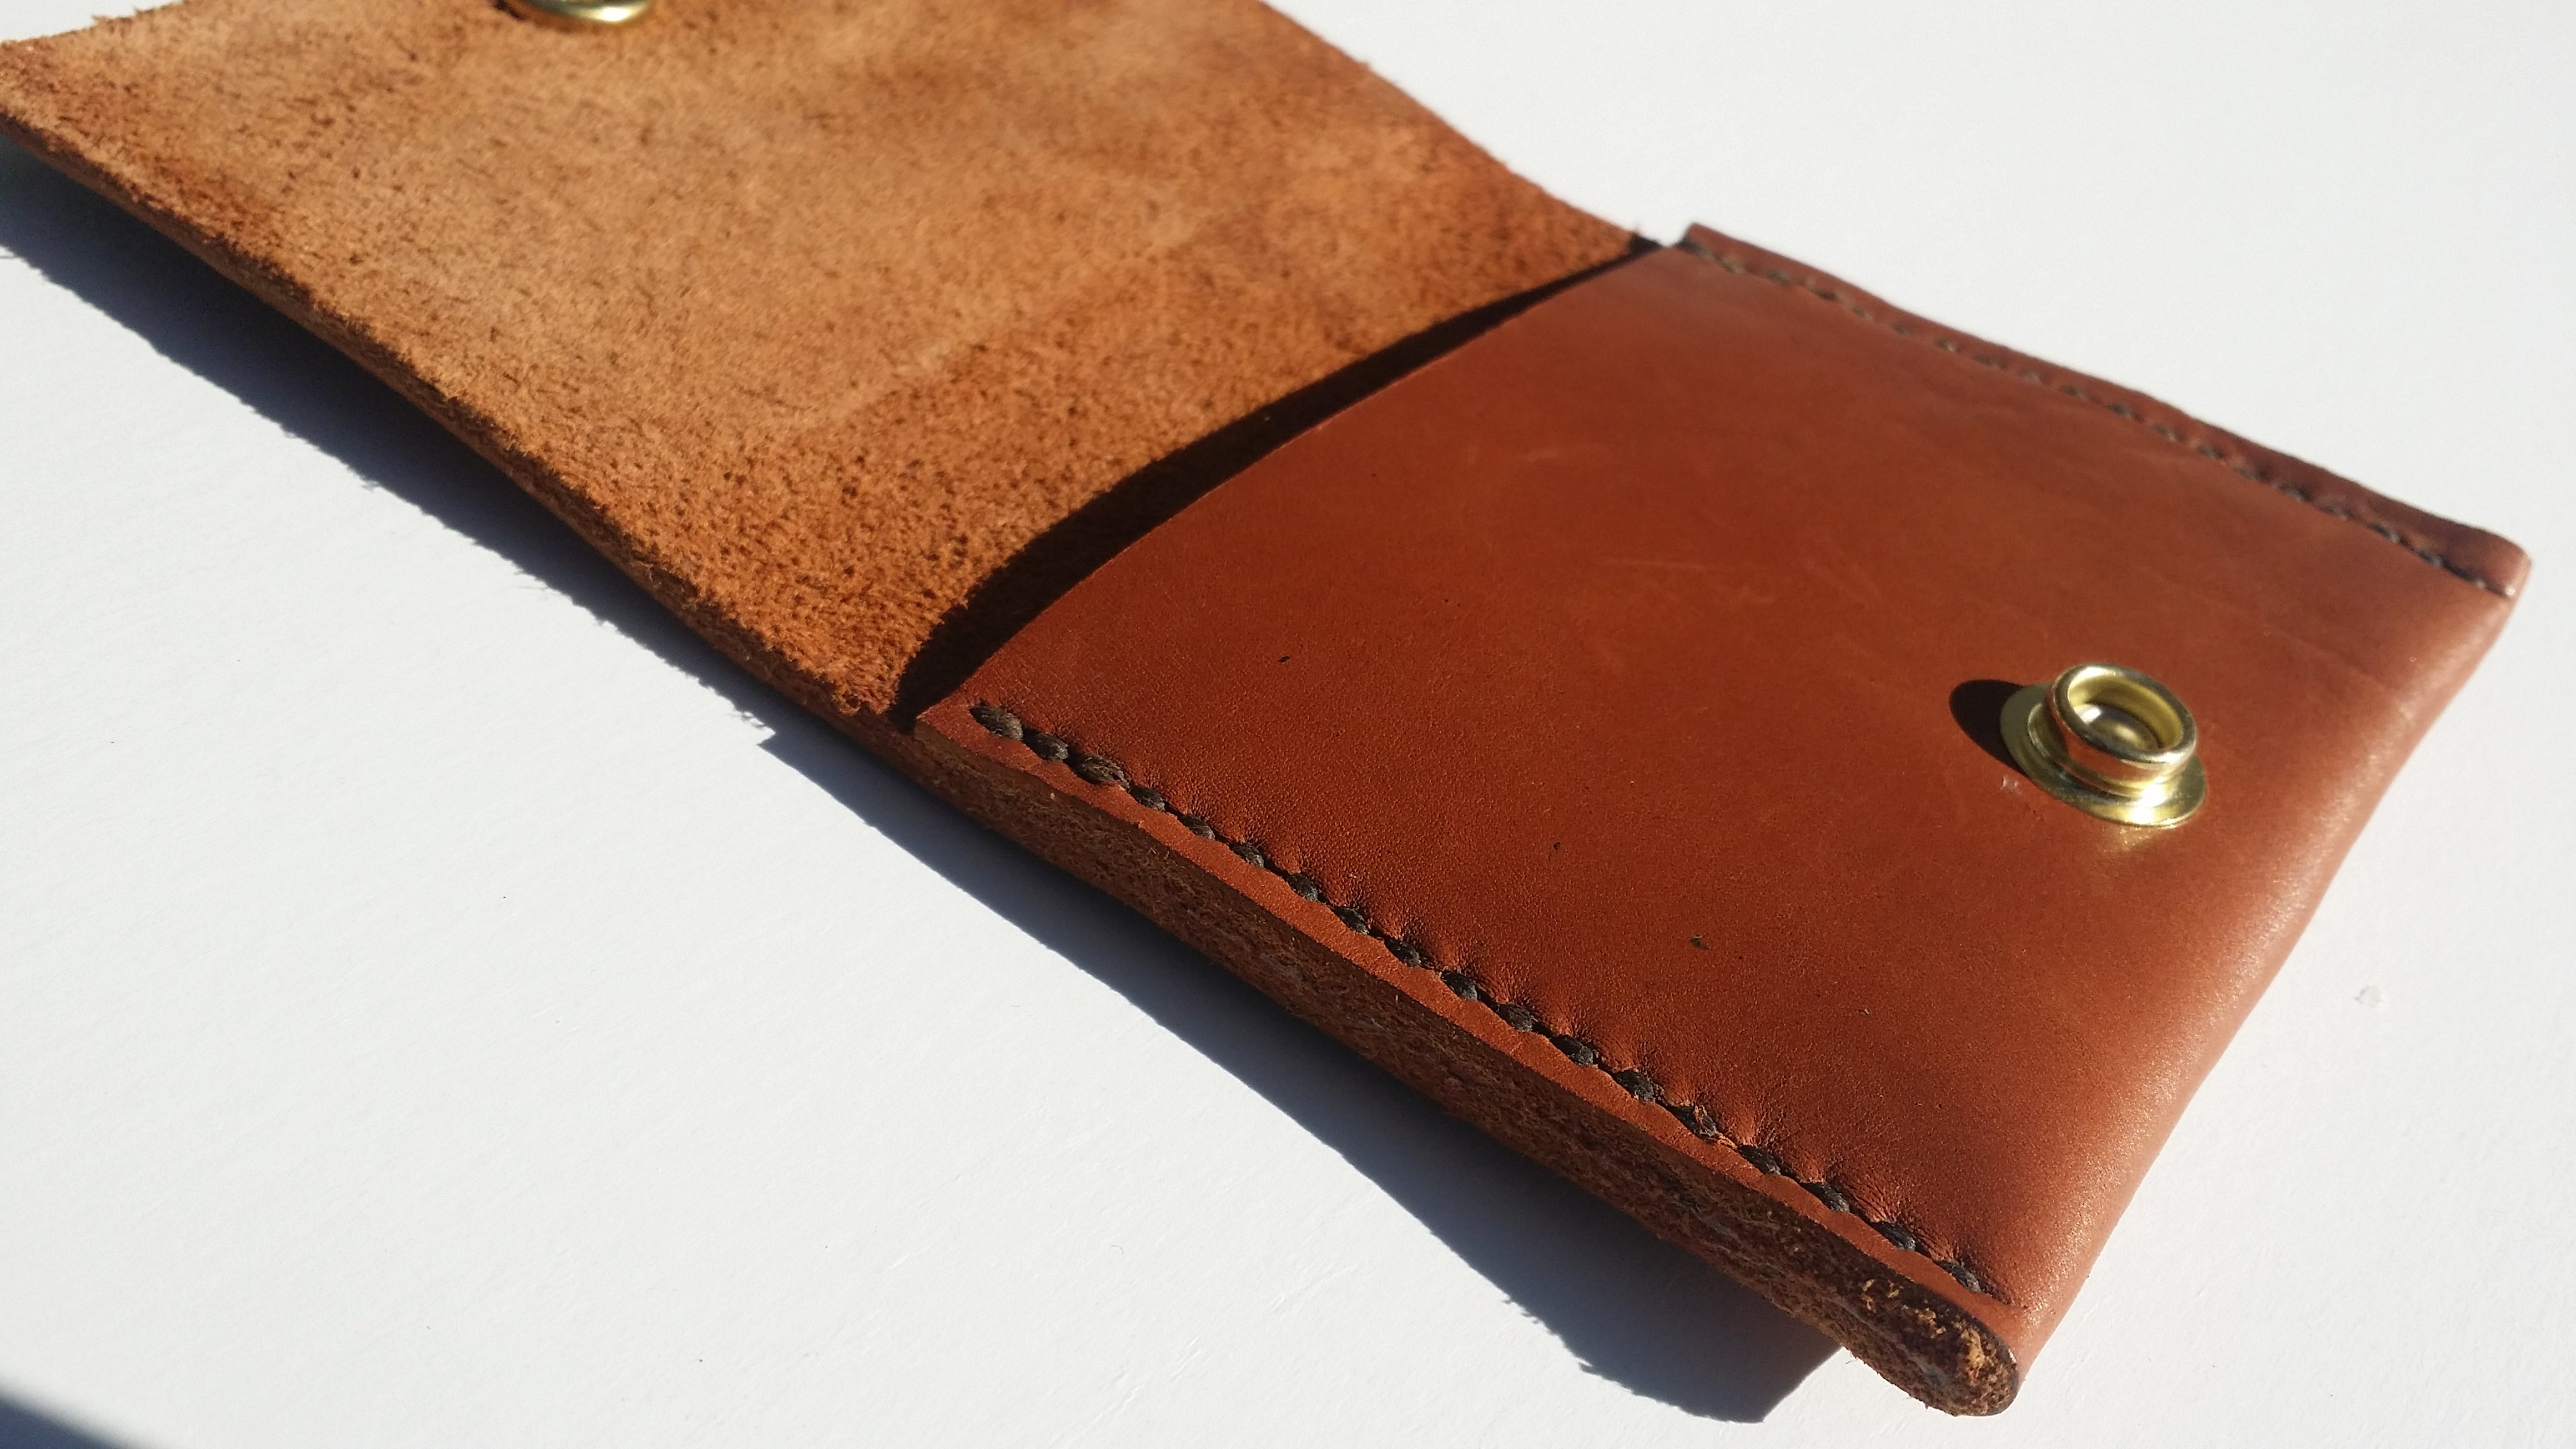 Peanut Butter Brown Premium Leather Wallet With Brown Stitching